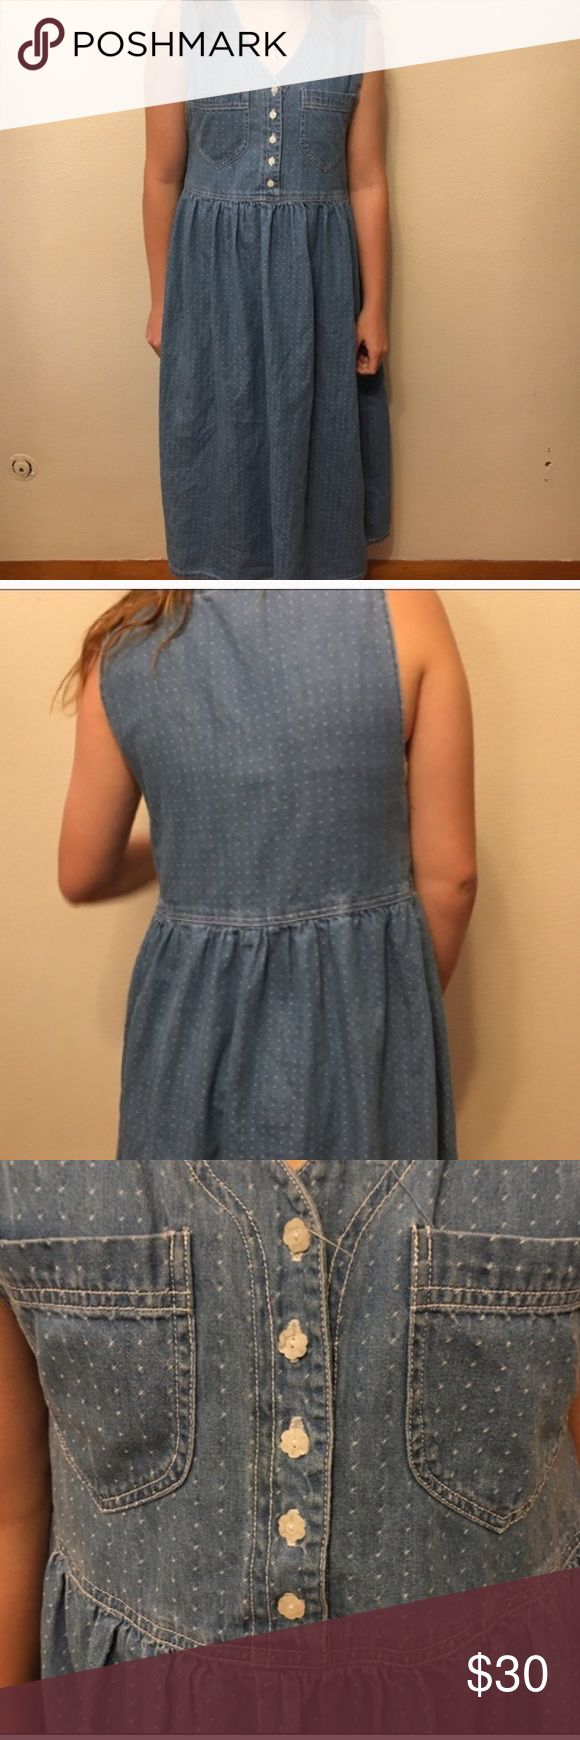 Vintage polka dot maxi jean dress medium Vintage polka dot jean dress. Has flower shaped buttons. 44 inches long. In good vintage condition. 100 percent cotton. Vintage , festival , recycle, denim. Perfect for fall. Vintage Dresses Maxi